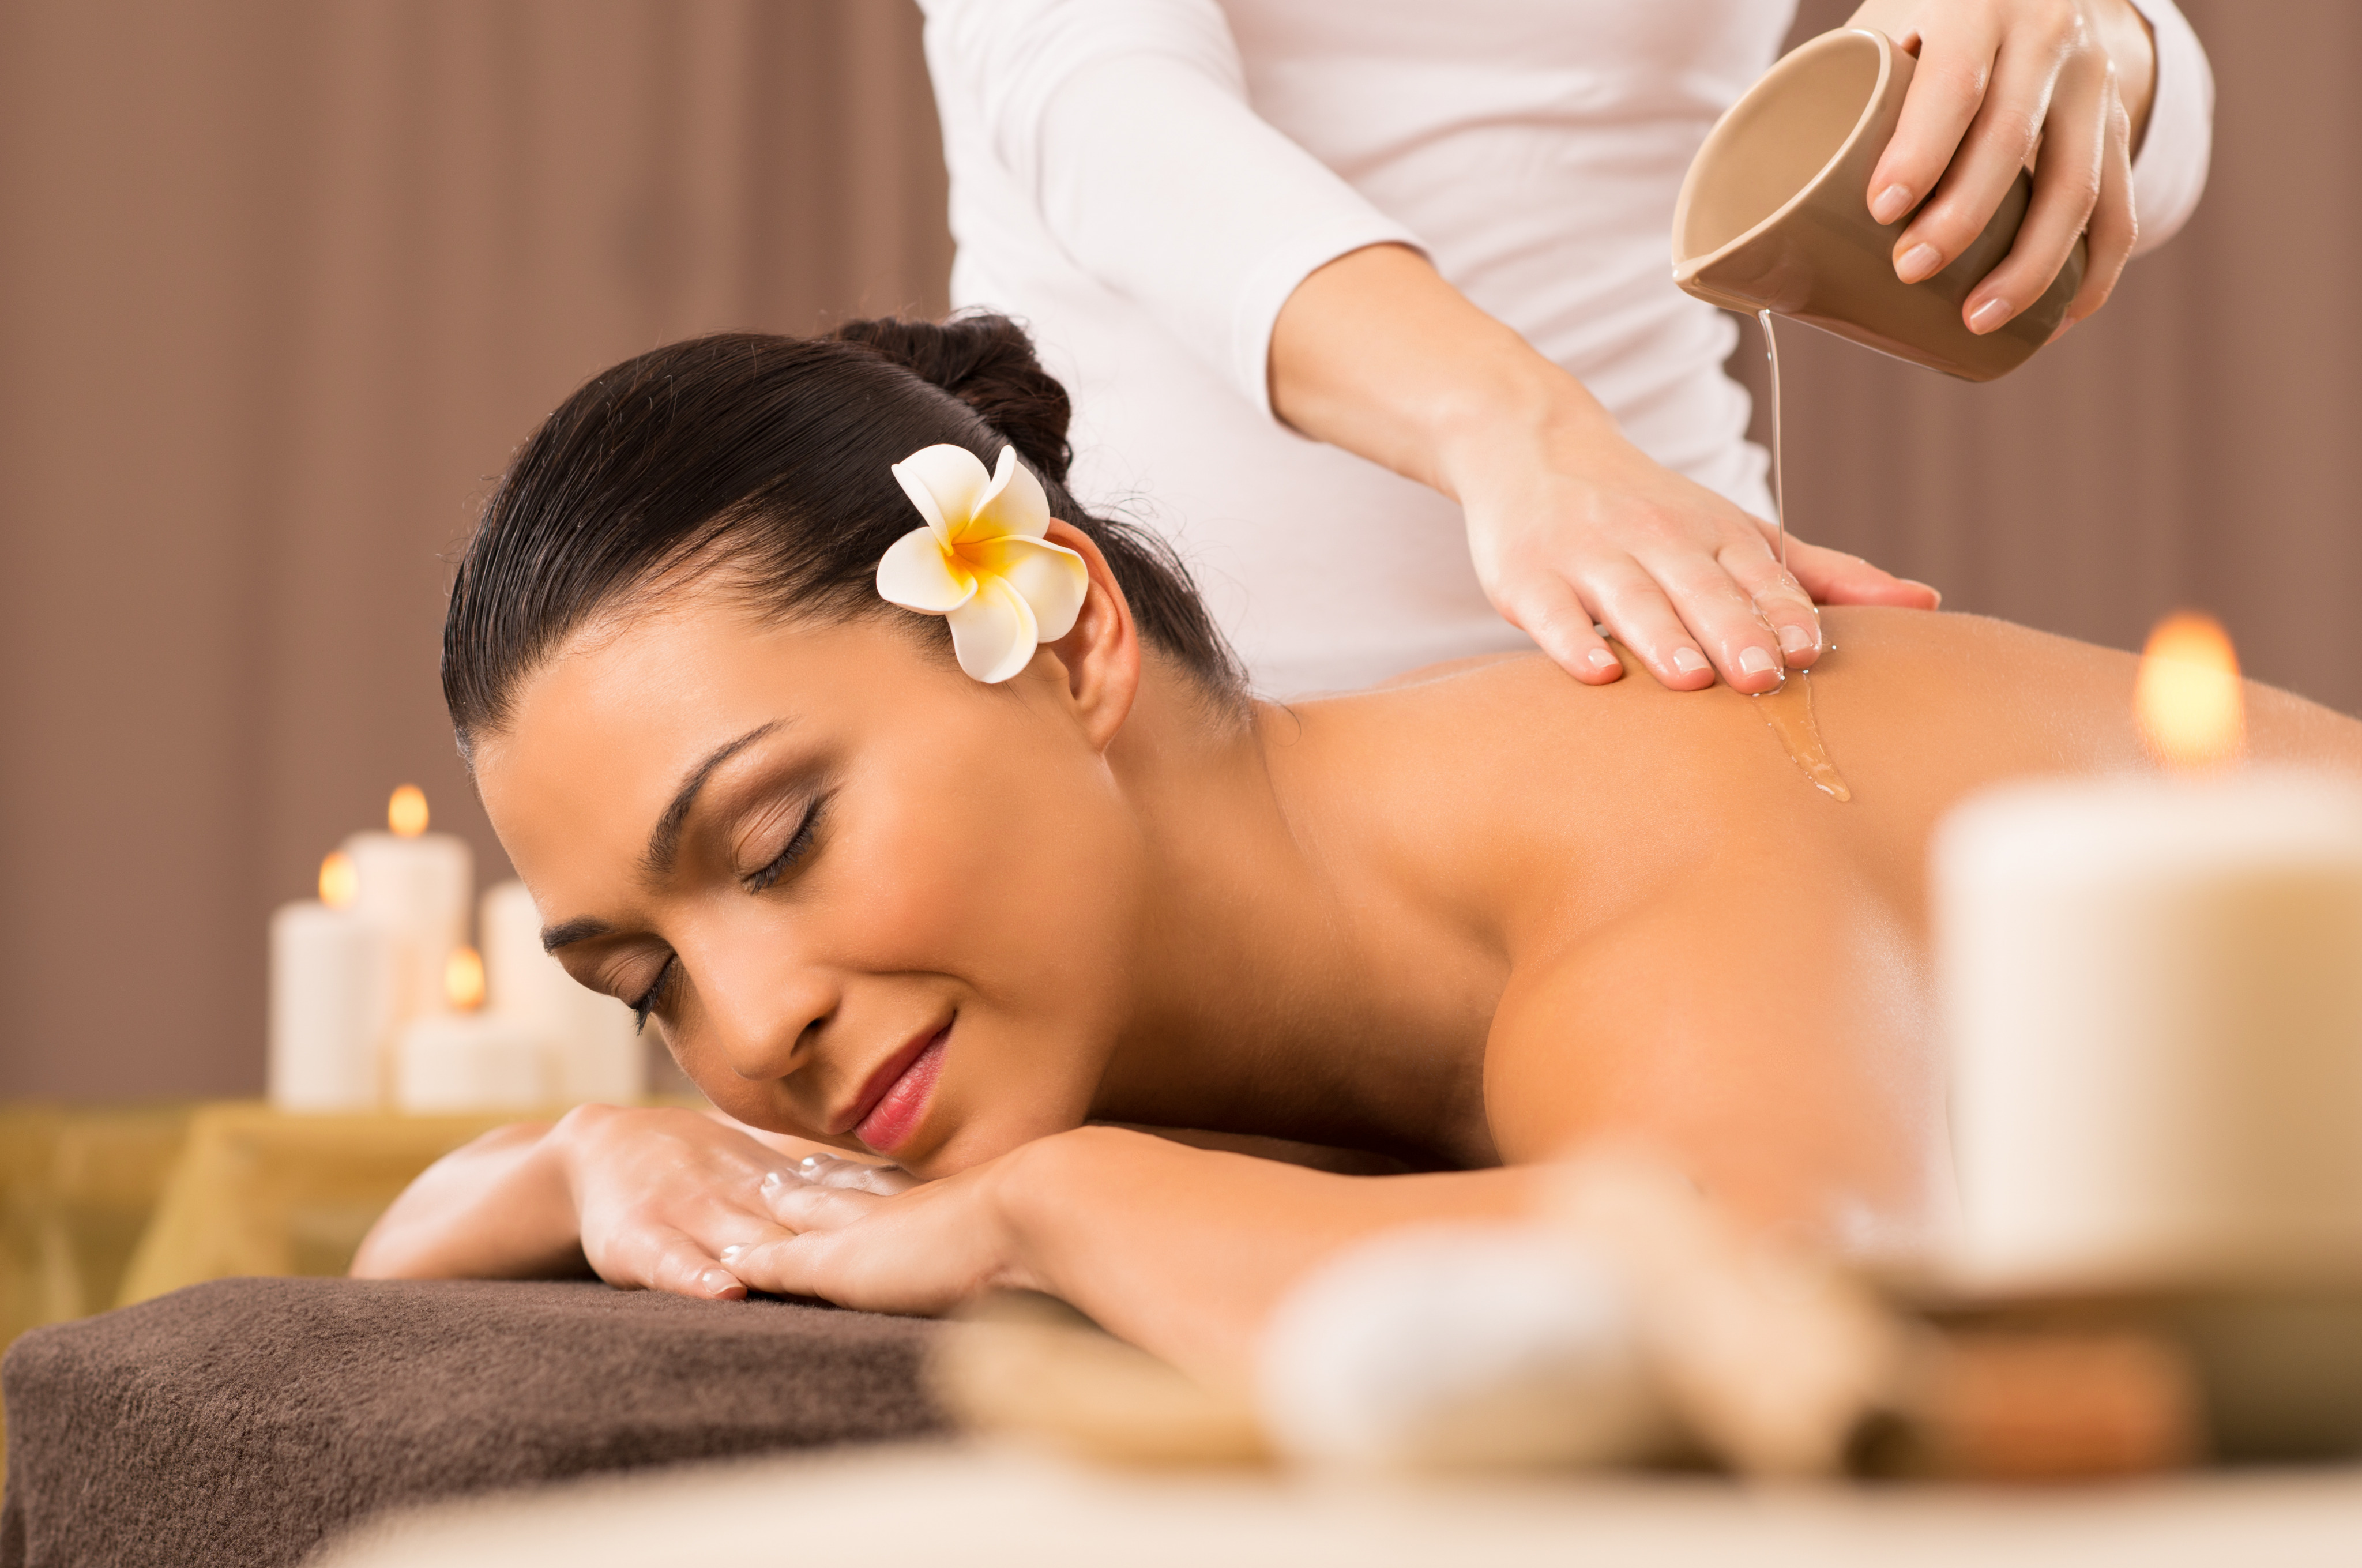 Massage Tinh Dầu - Esential Oil Massage